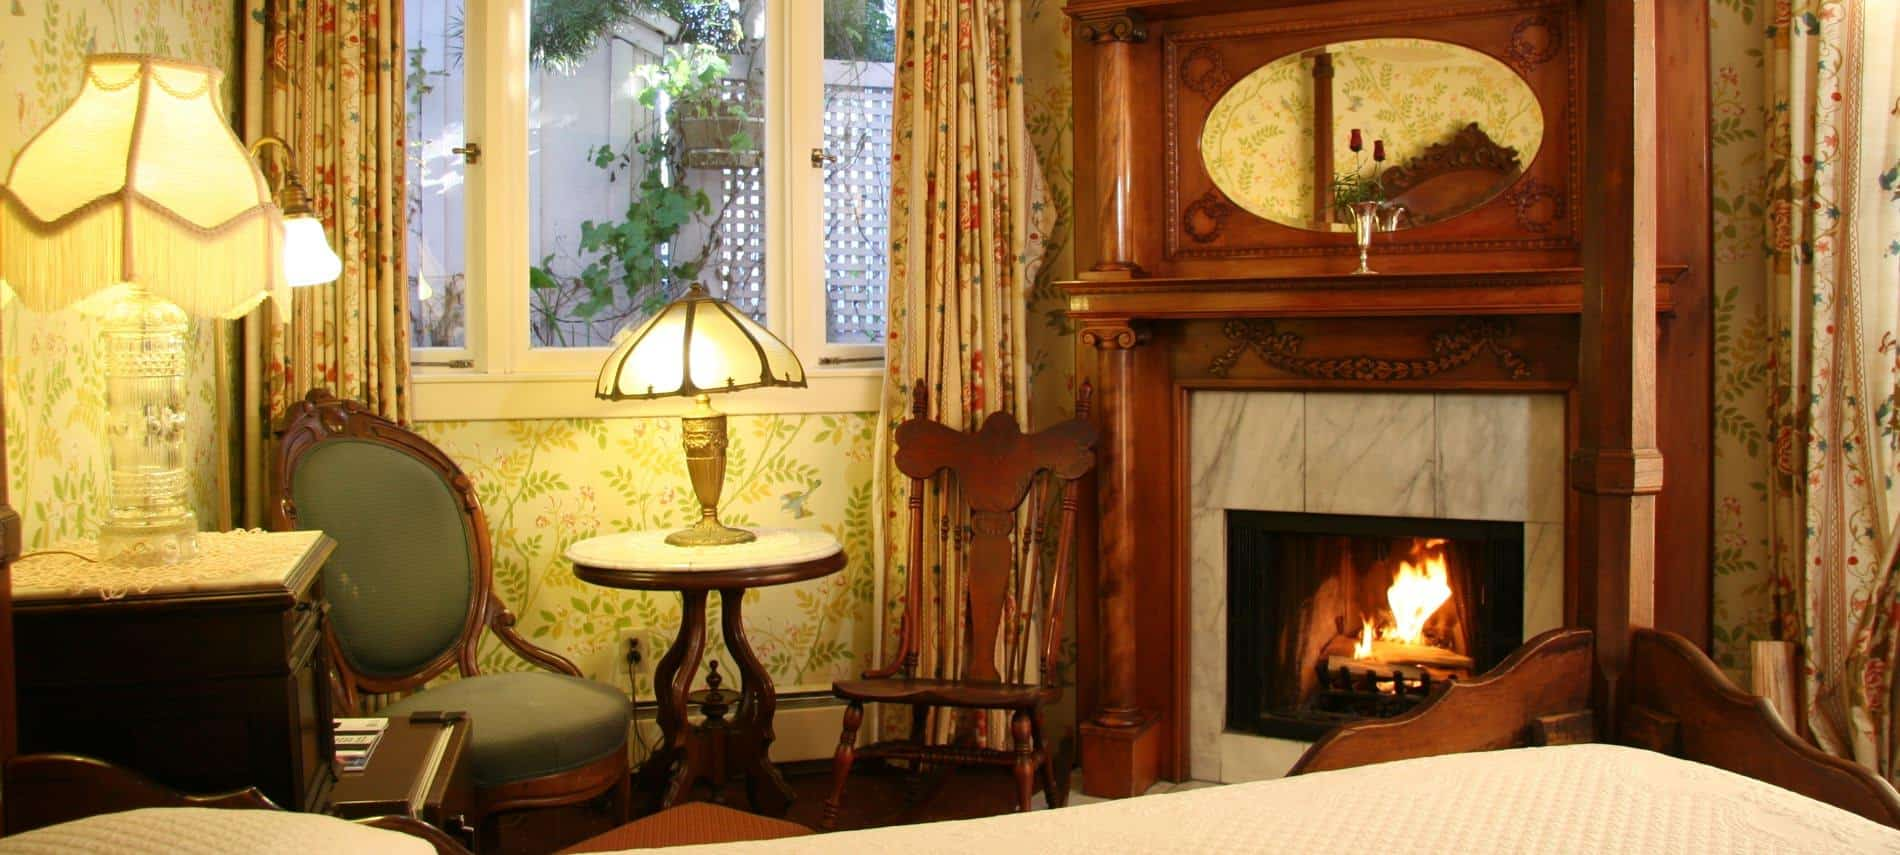 Guest room with papered walls, corner fireplace with warm fire, two chairs and table under a triple window